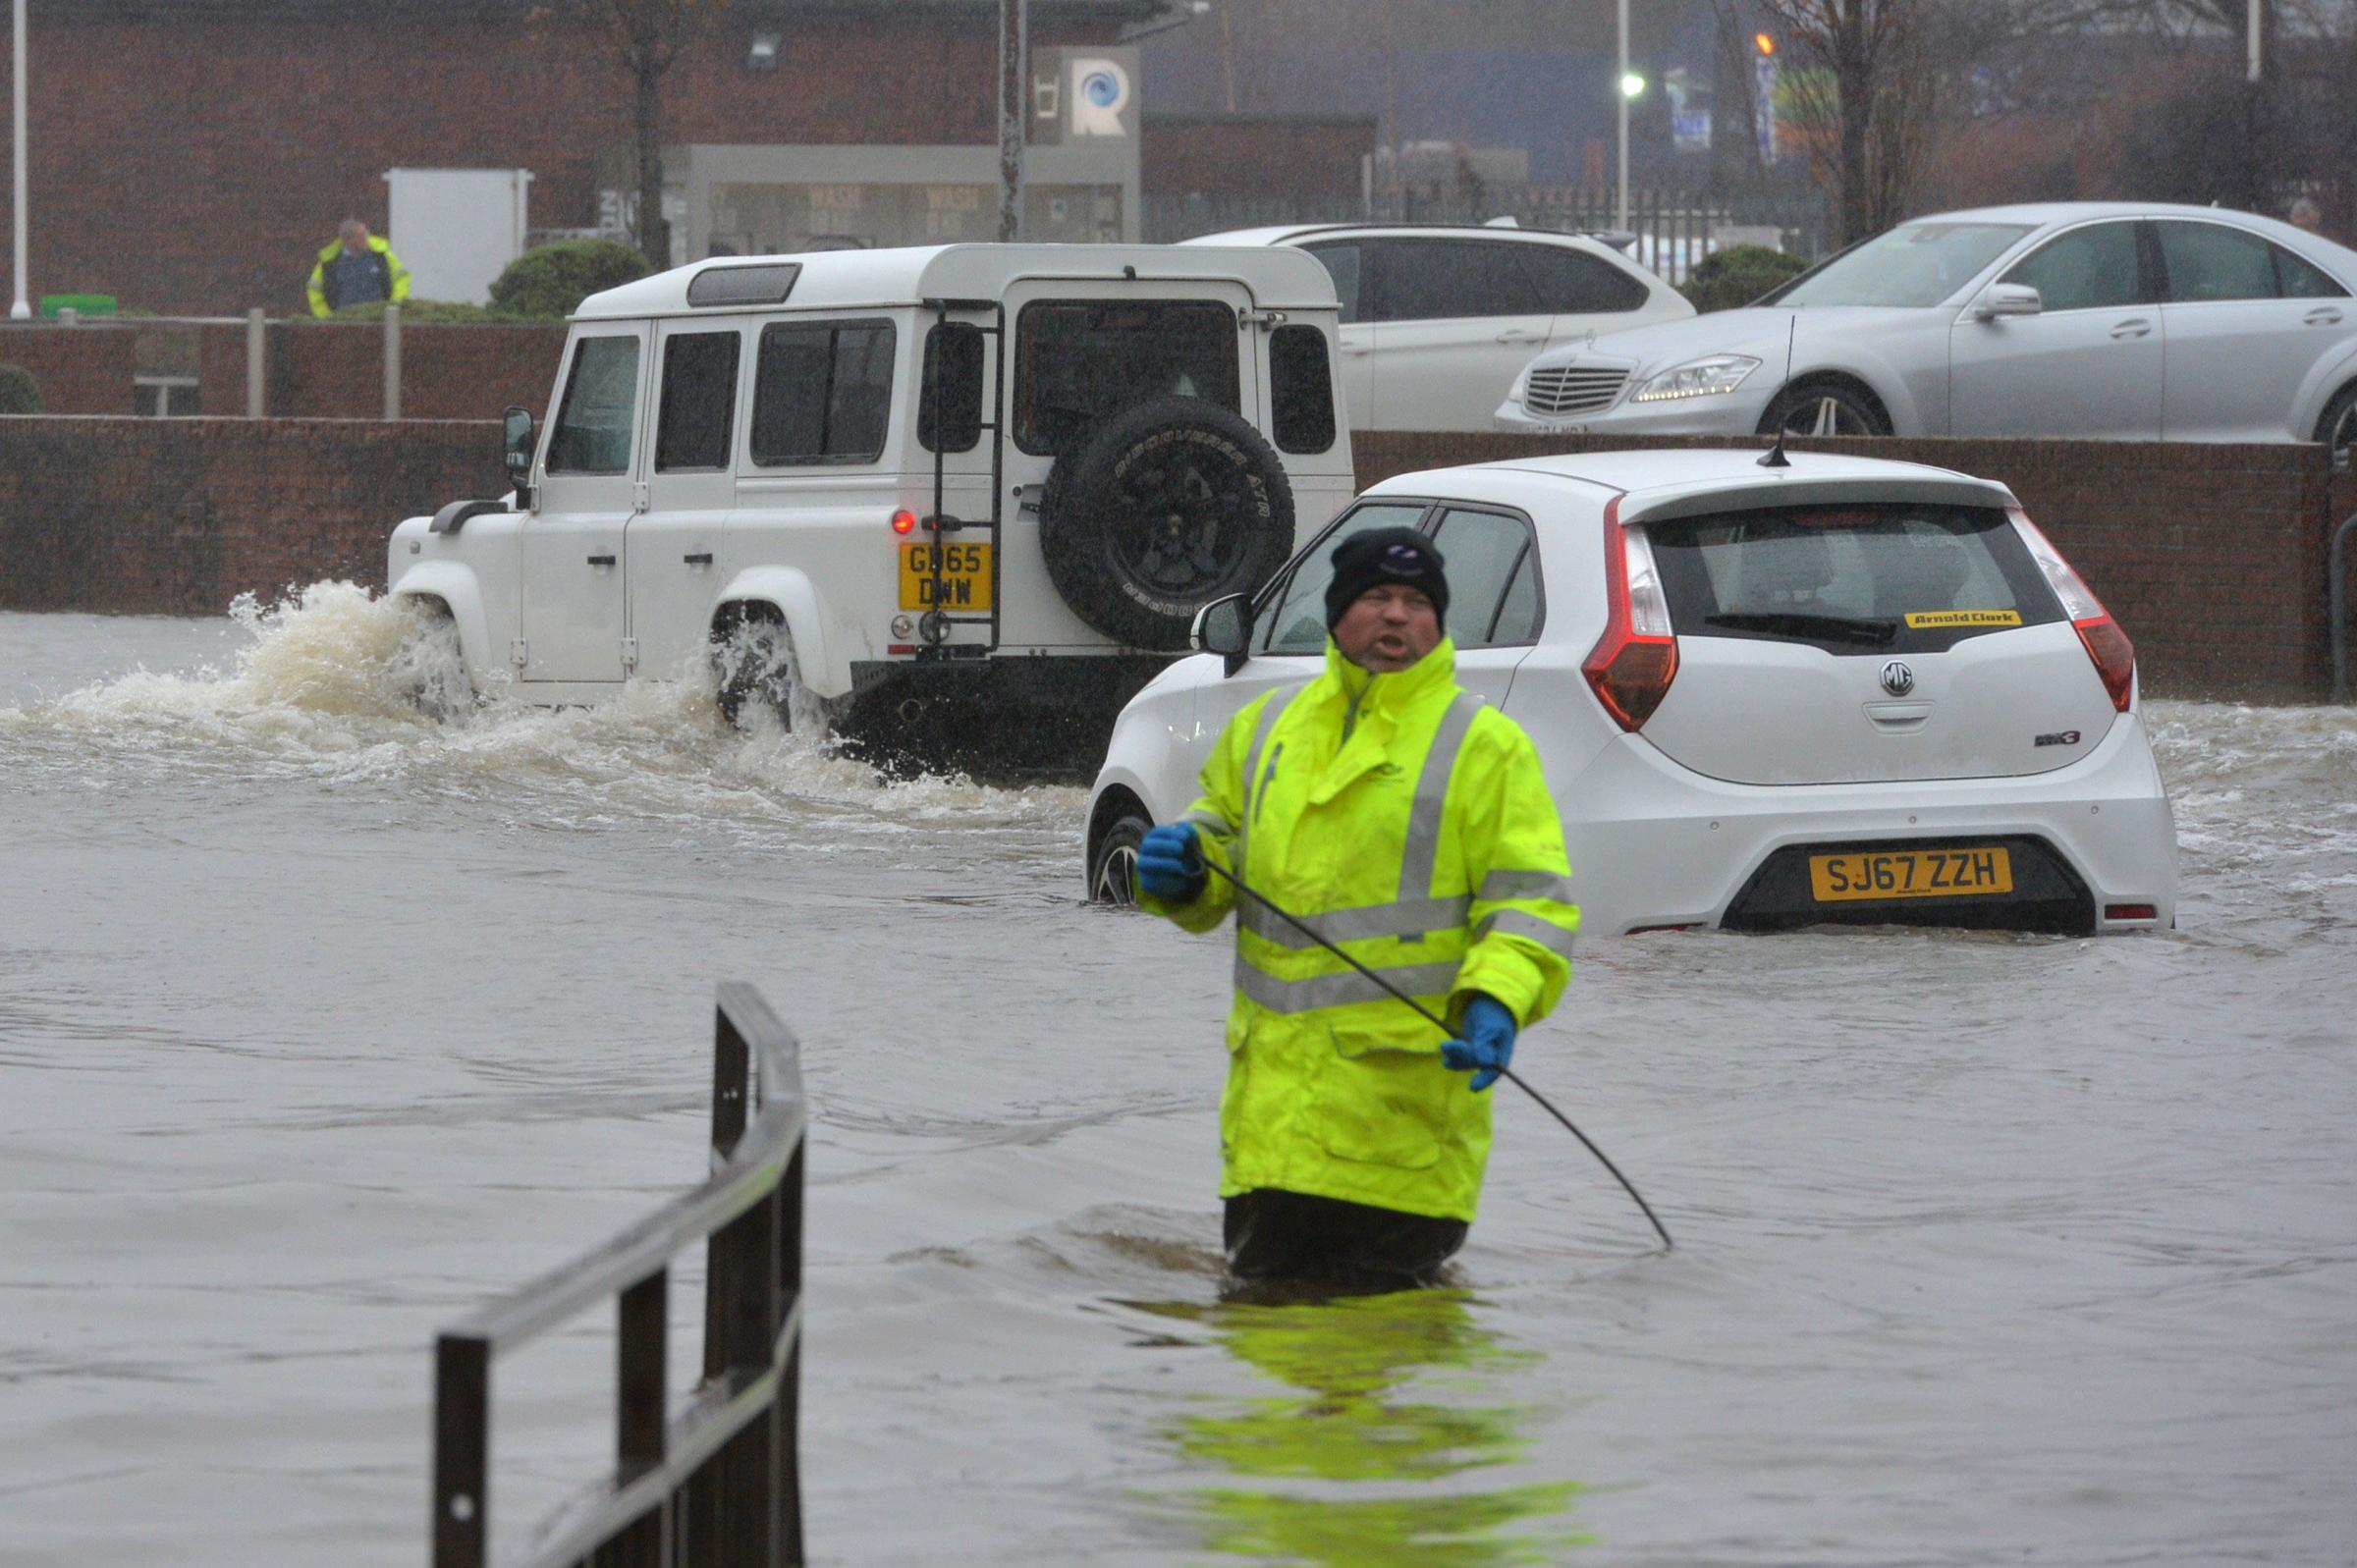 Scotland's weather: Warnings over hurricane force winds, flooding and snow for Saturday